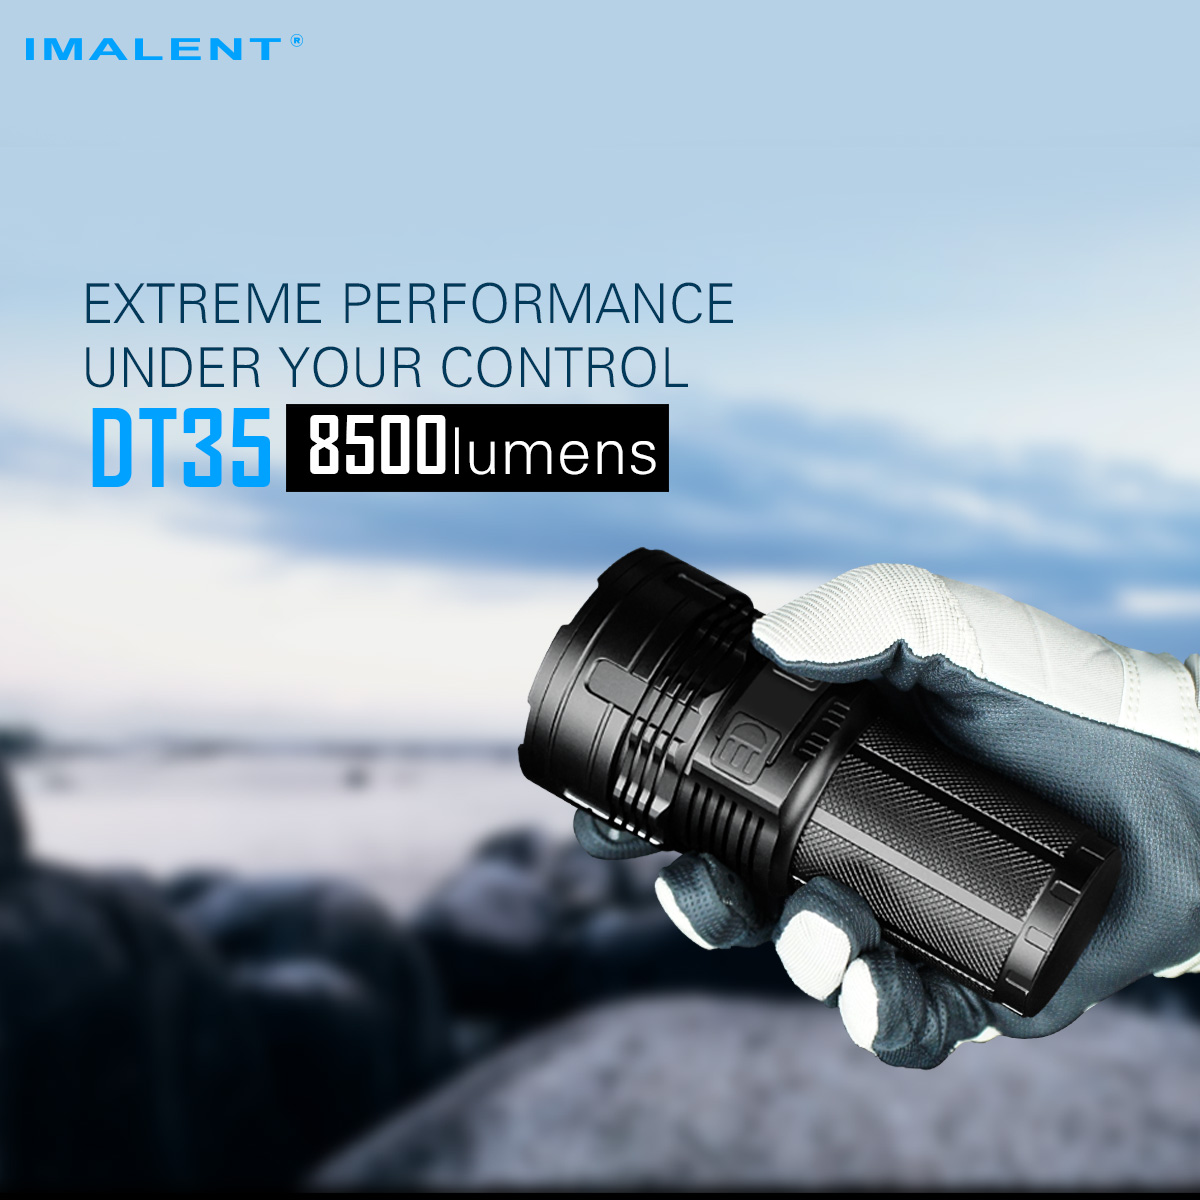 IMALENT DT35 A versatile USB rechargeable LED tactical flashlight with multi-level output and an OLED display